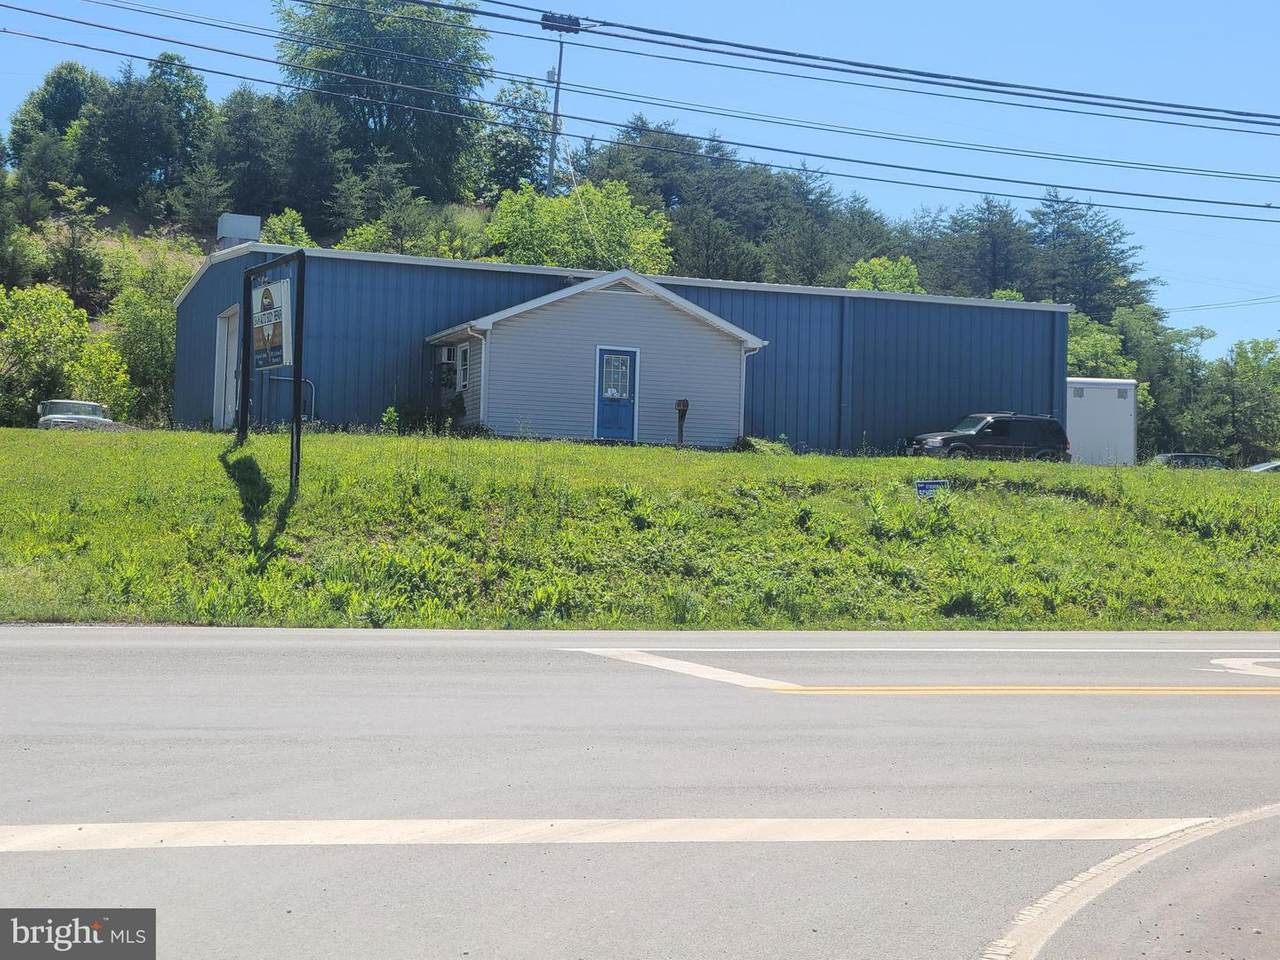 1481 Us Hwy 220 S - Photo 1